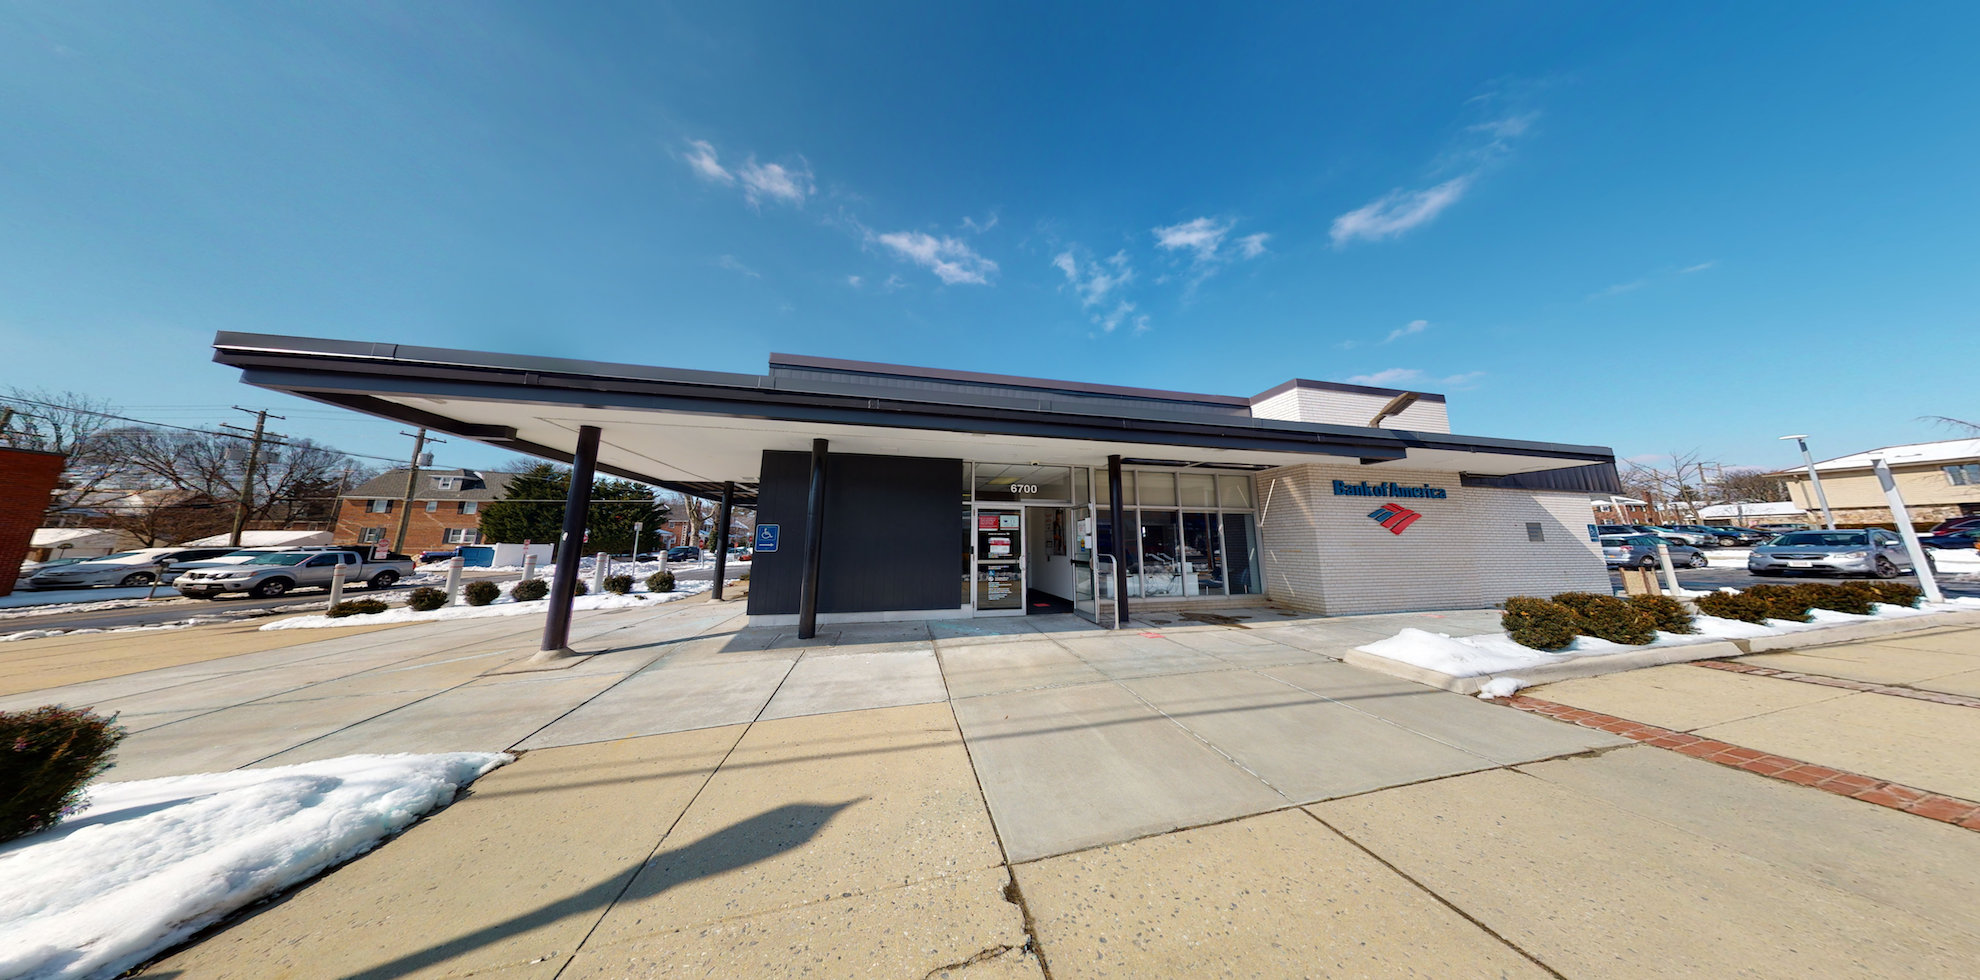 Bank of America financial center with drive-thru ATM and teller | 6700 York Rd, Baltimore, MD 21212